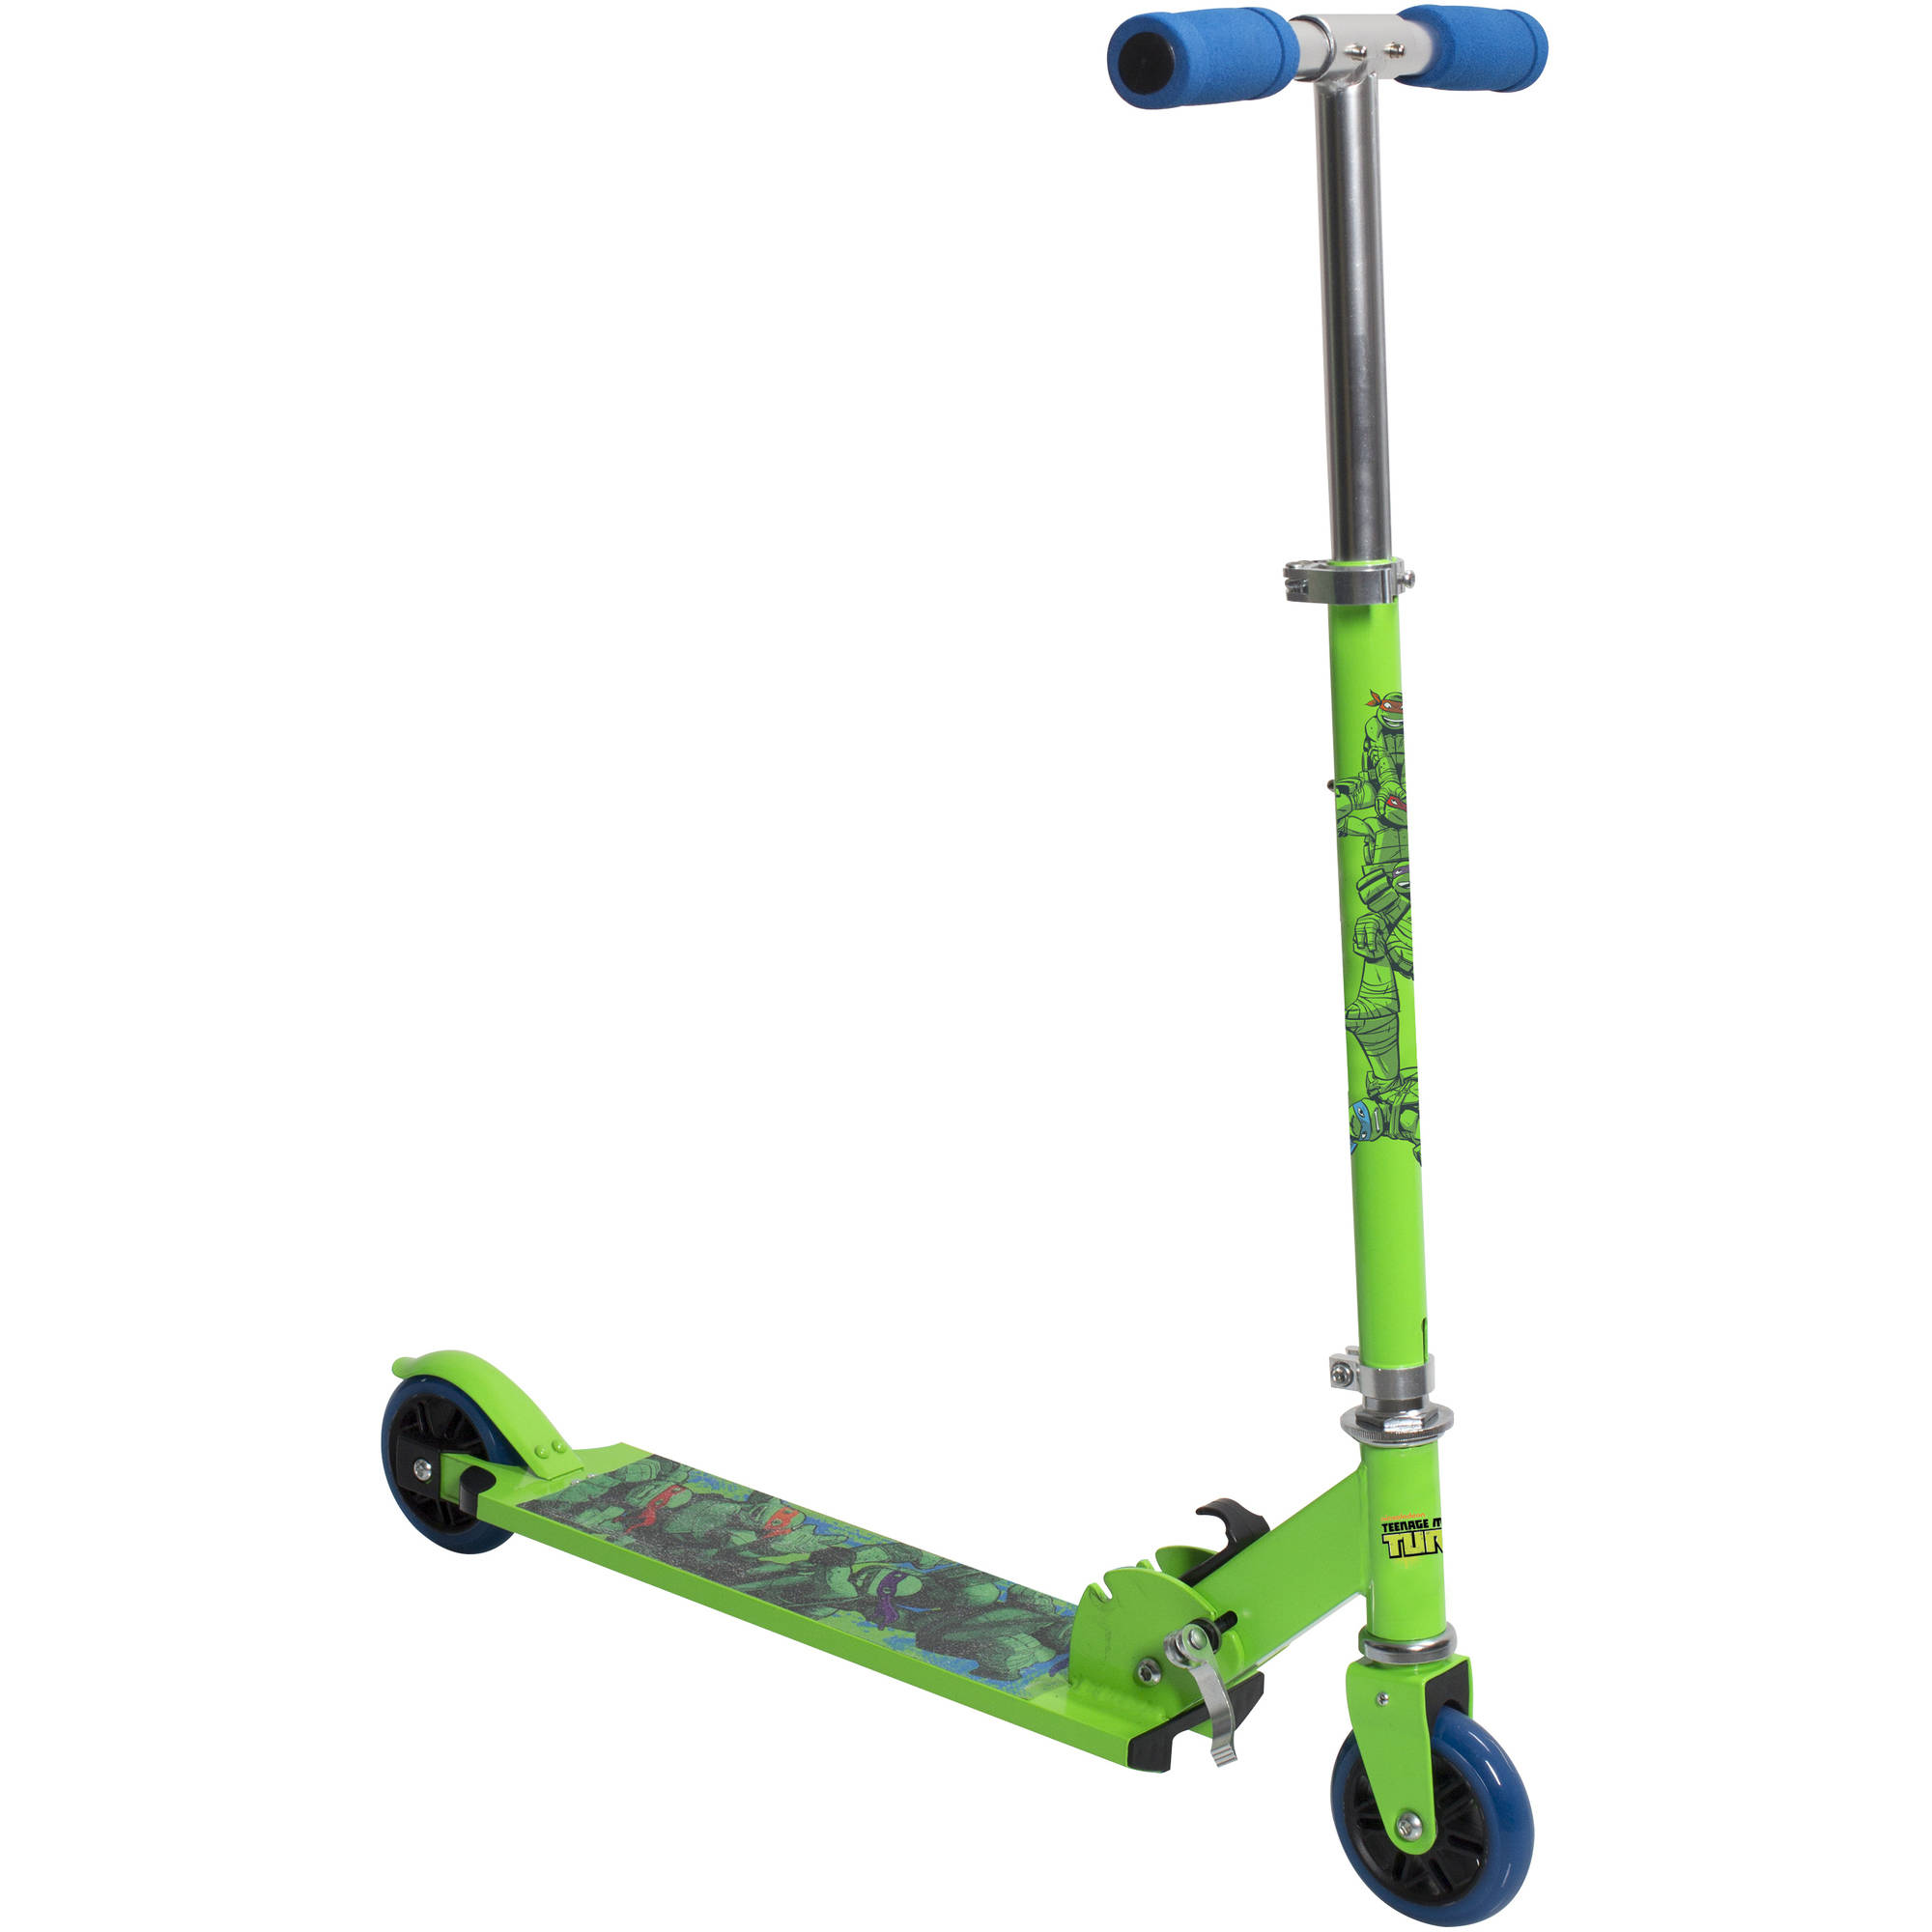 Teenage Mutant Ninja Turtles Aluminum Folding Scooter by